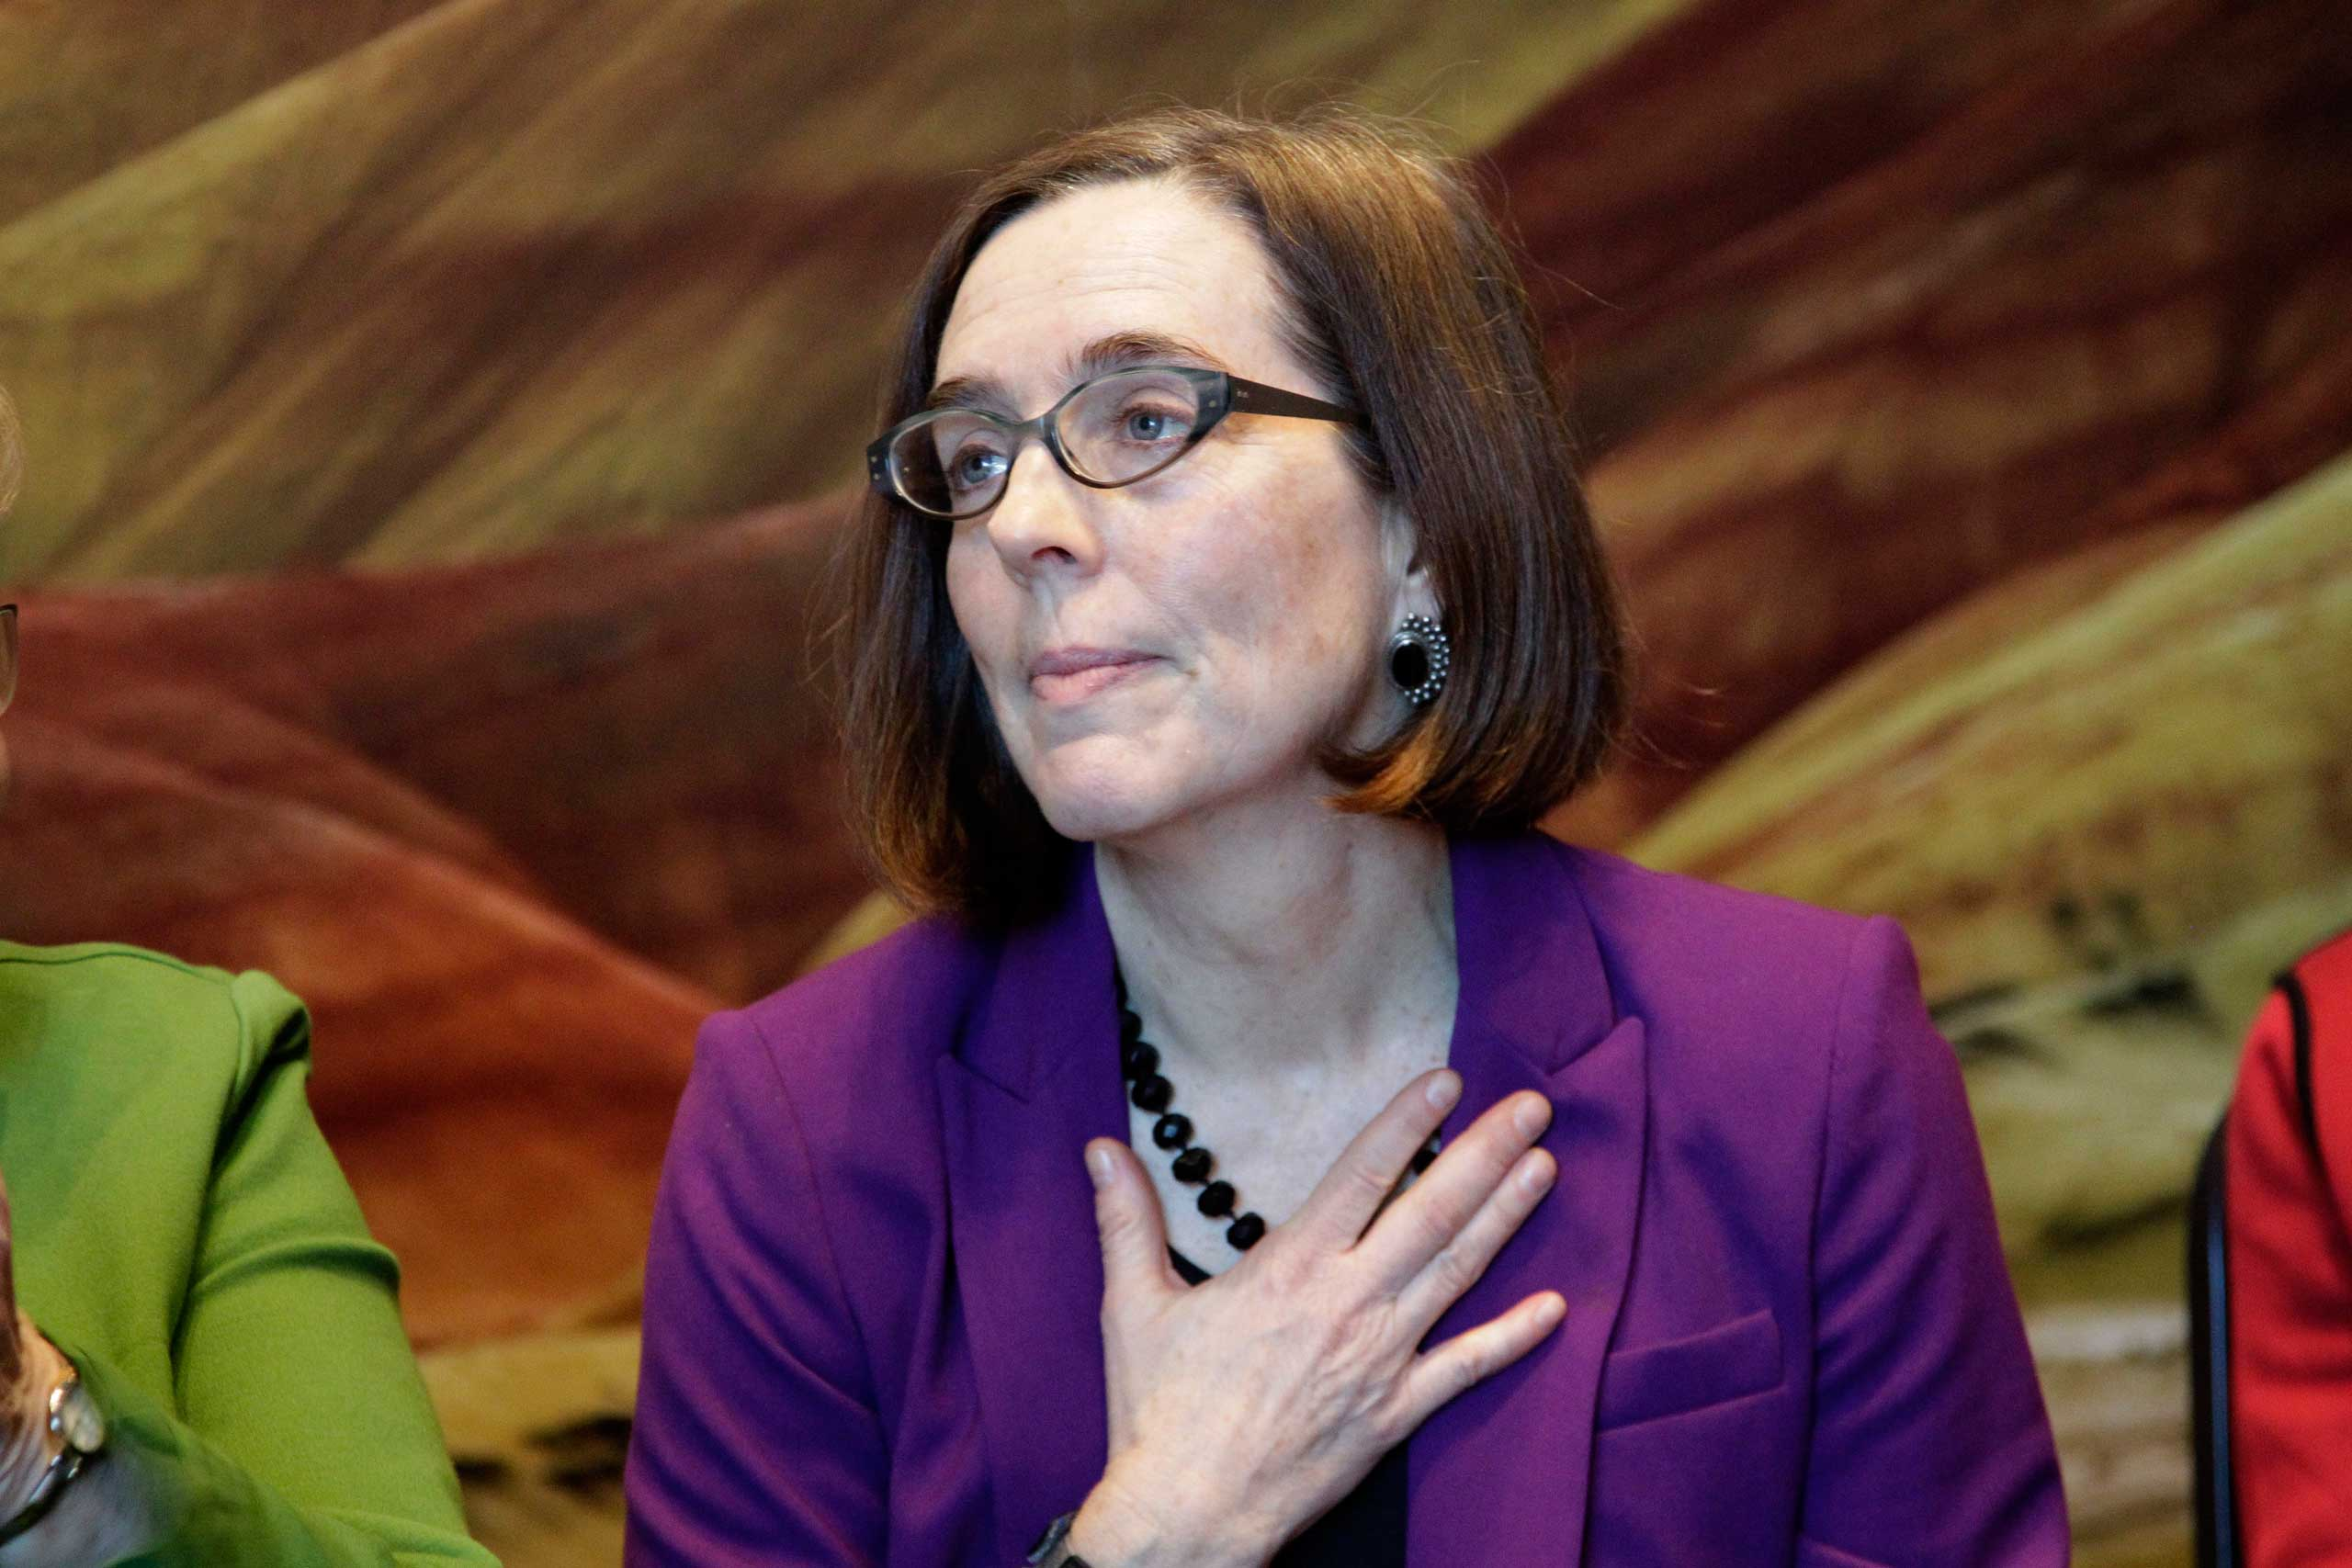 Then-Oregon Secretary of State Kate Brown is shown during a celebration at the Oregon Historical Society to mark the 156th anniversary of Oregon's admission to the union as the 33rd state in Portland, Ore., Feb. 14, 2015.